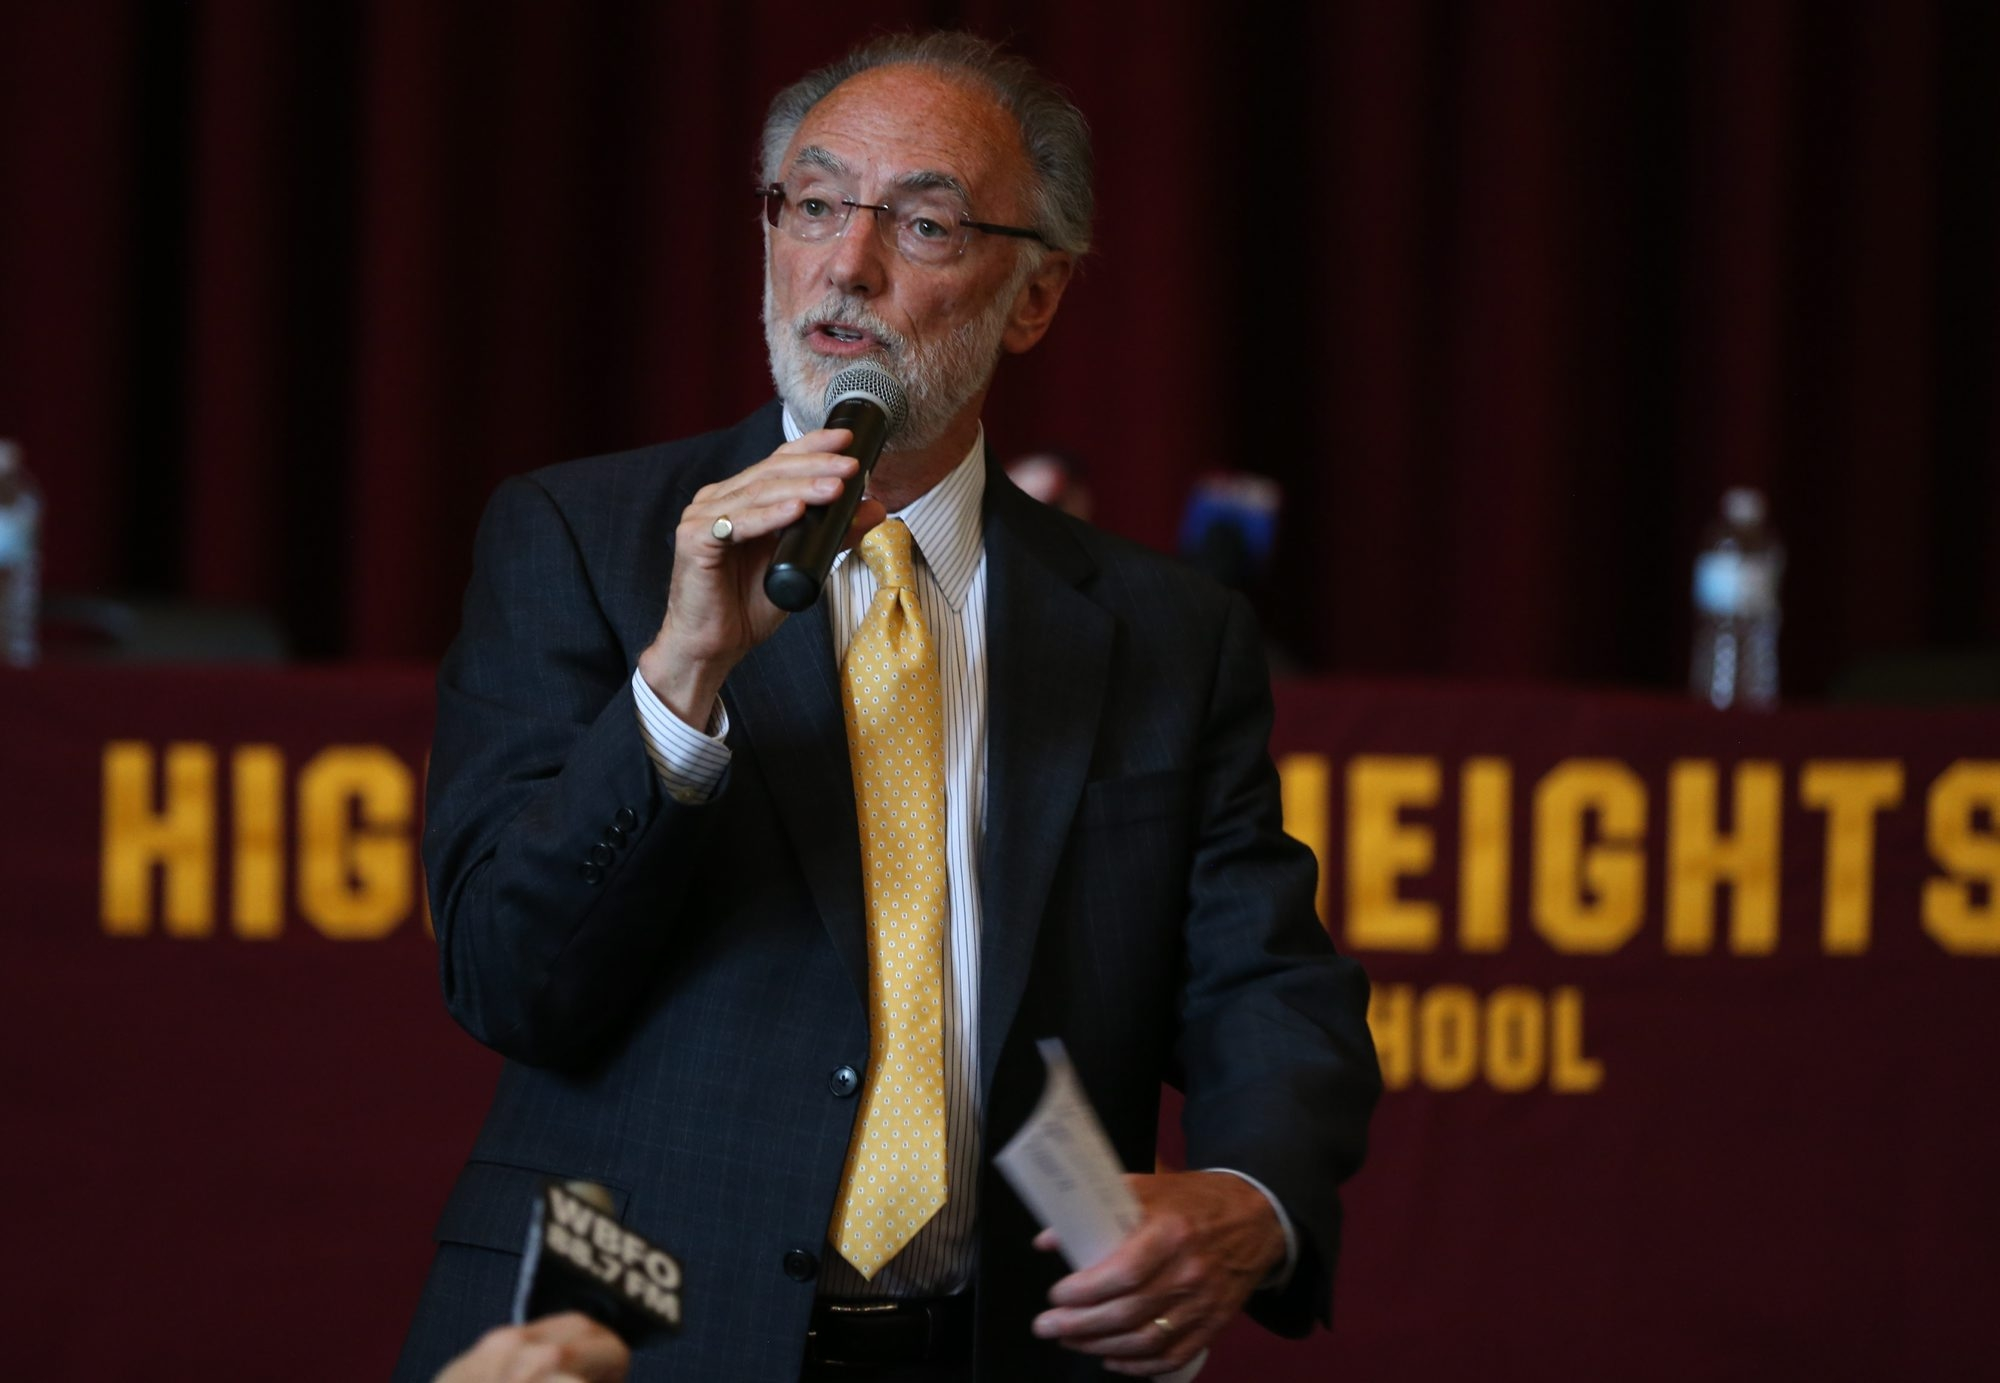 With the departure of Interim Superintendent Donald A. Ogilvie just weeks away, the Buffalo School Board must move quickly to set up the process that will identify his successor.